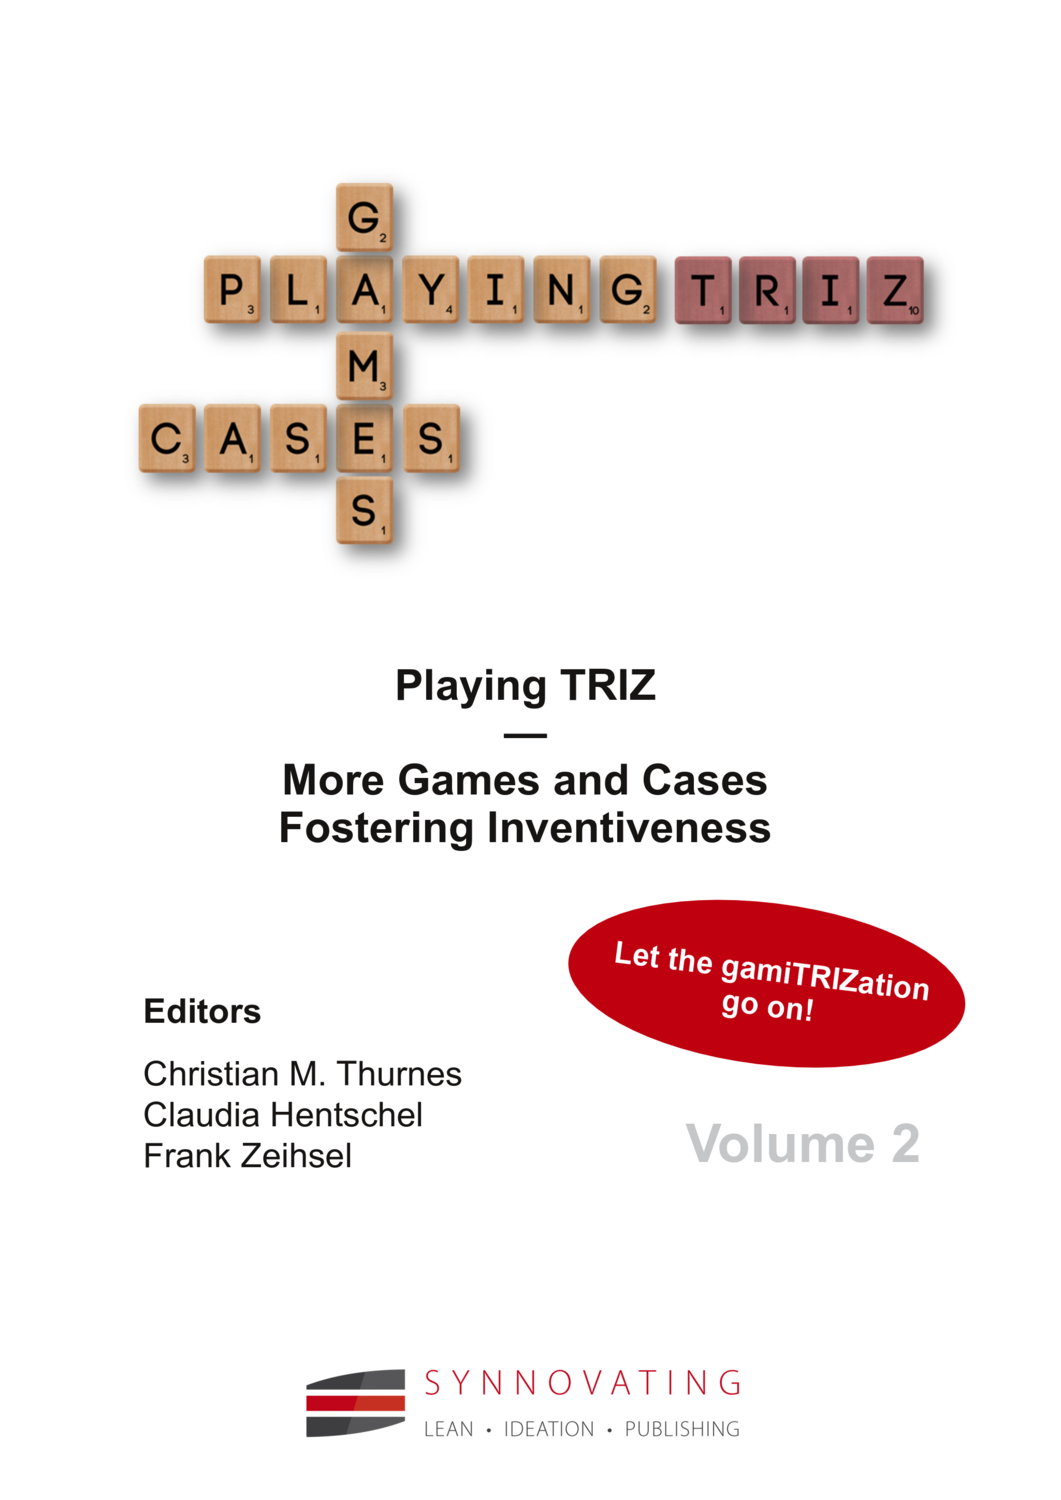 Thurnes/Hentschel/Zeihsel Playing TRIZ Vol. 2 - More Games and Cases Fostering Inventiveness